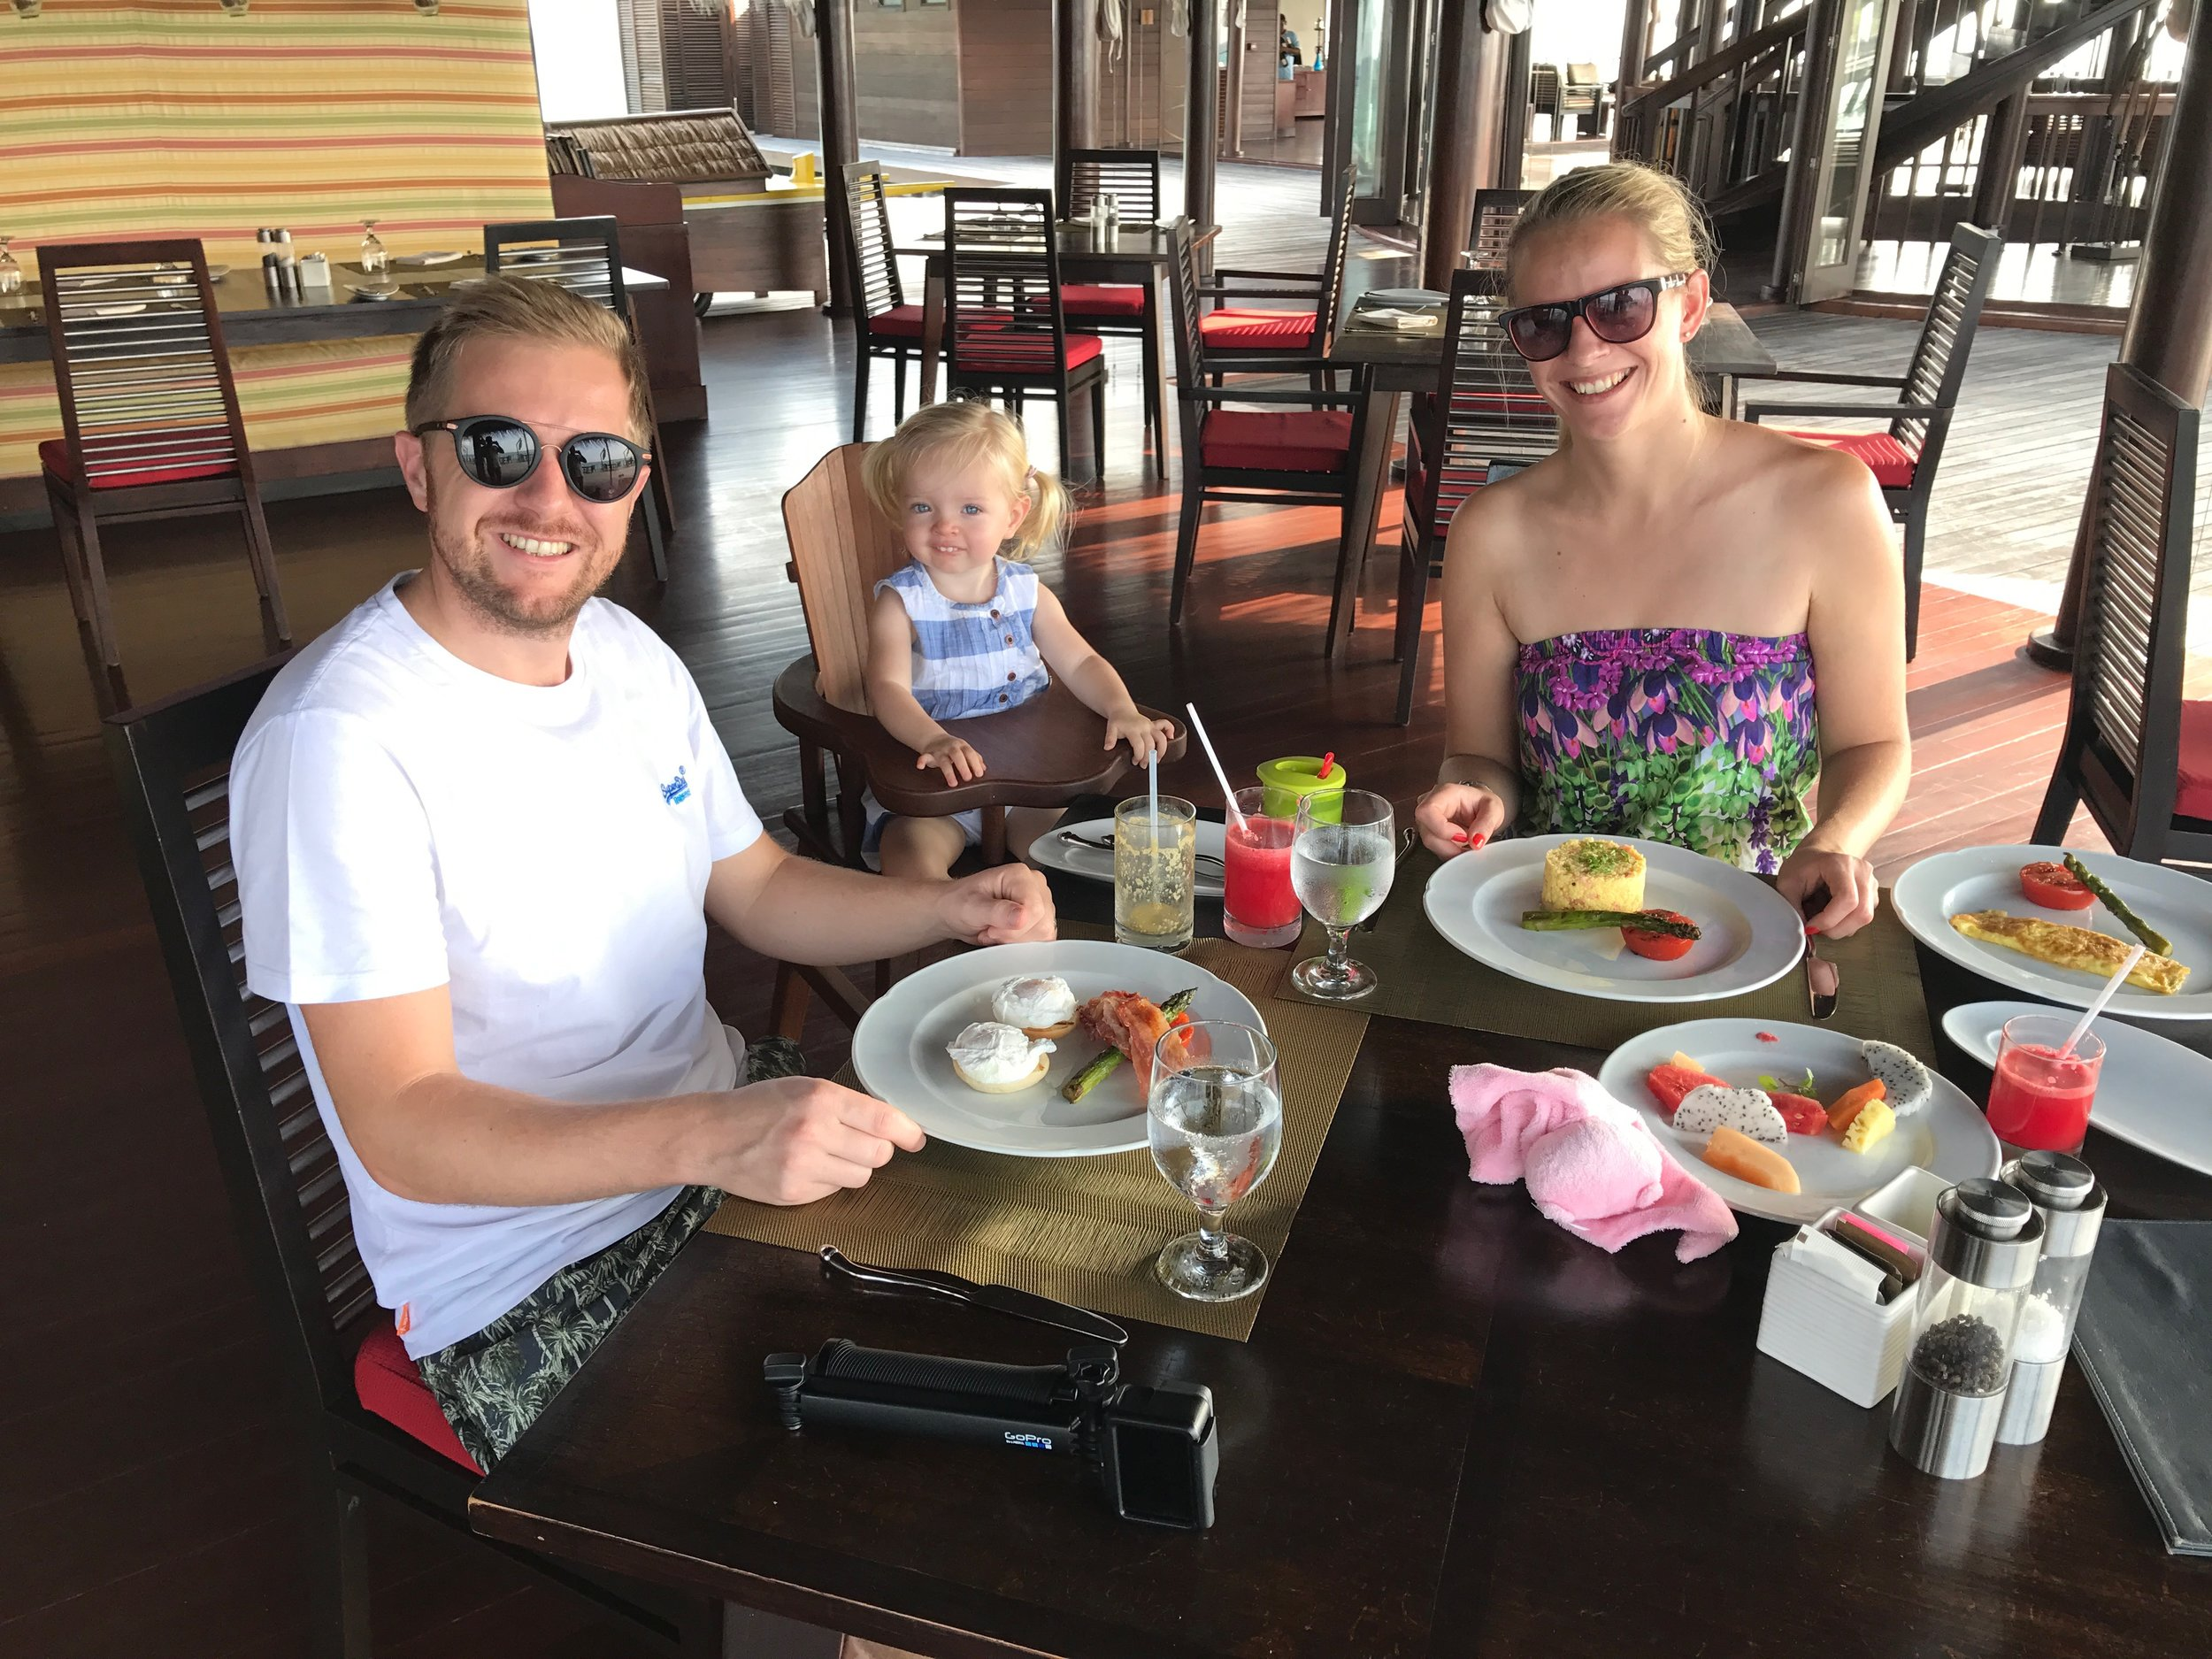 invite-to-paradise-maldives-family-holiday-packages-reece-claire-betsy-turvill.jpg